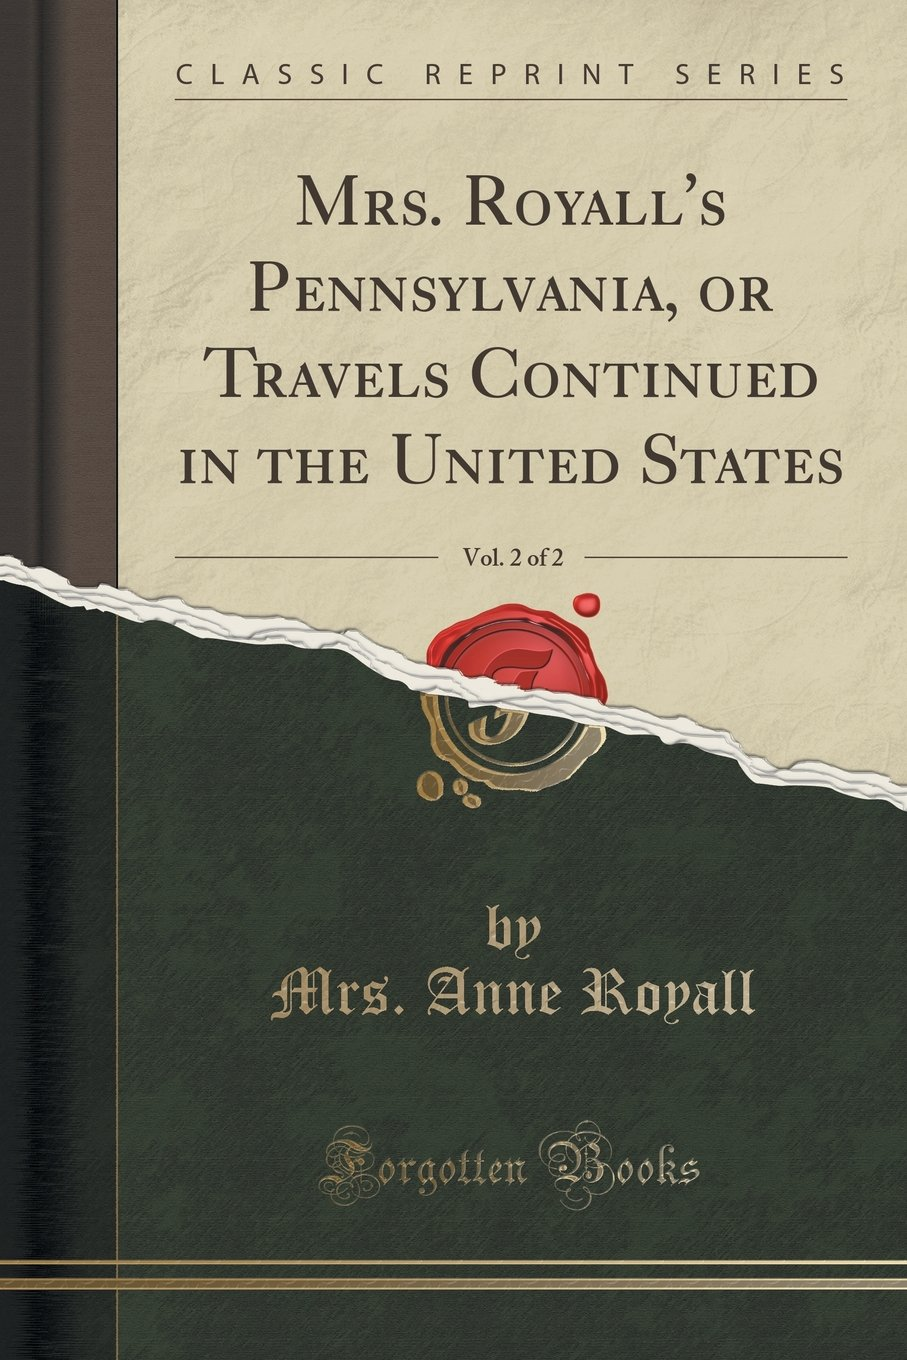 Mrs. Royall's Pennsylvania, or Travels Continued in the United States, Vol. 2 of 2 (Classic Reprint)